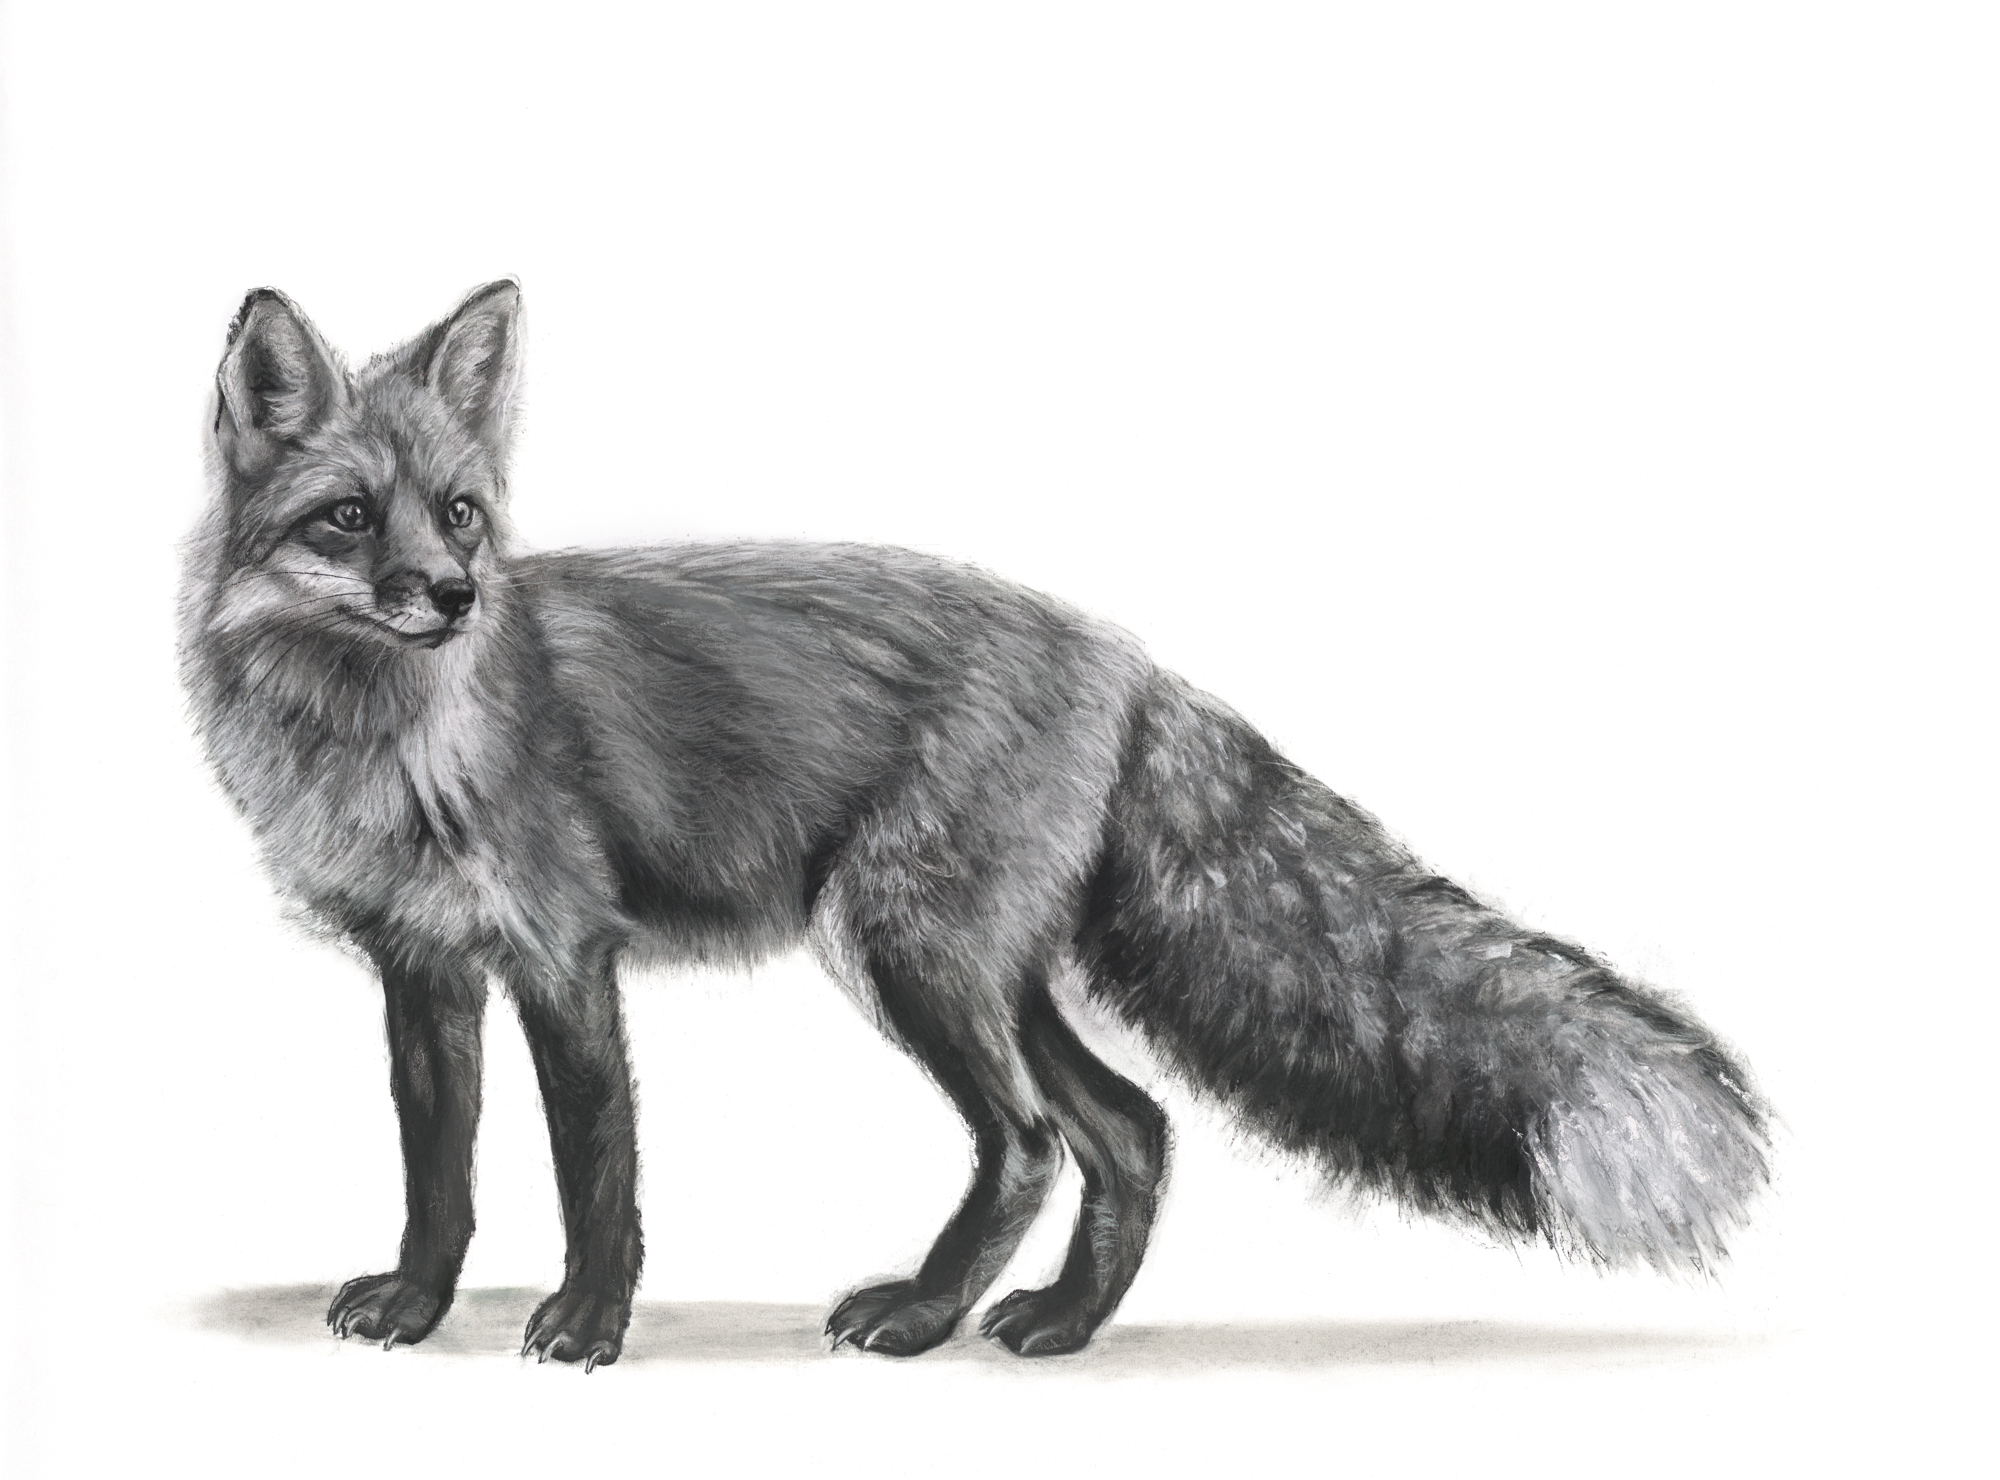 Vixen by Lucy Boydell